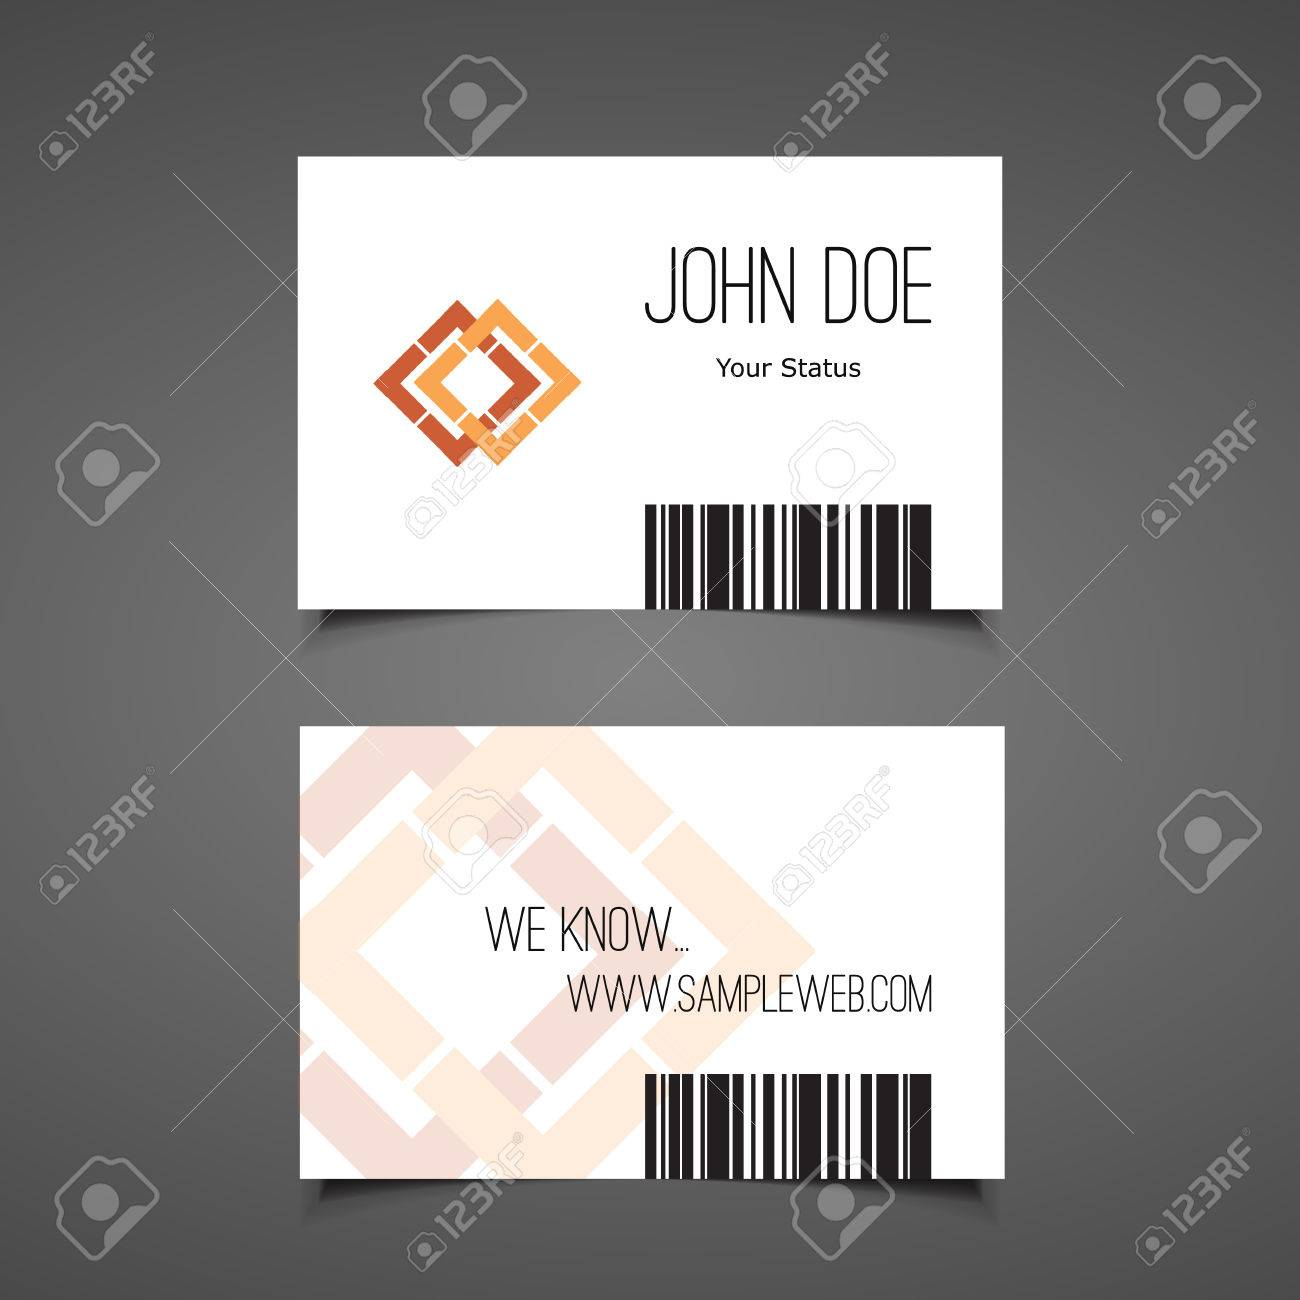 Business Or Gift Card Design With Barcode Royalty Free Cliparts ...